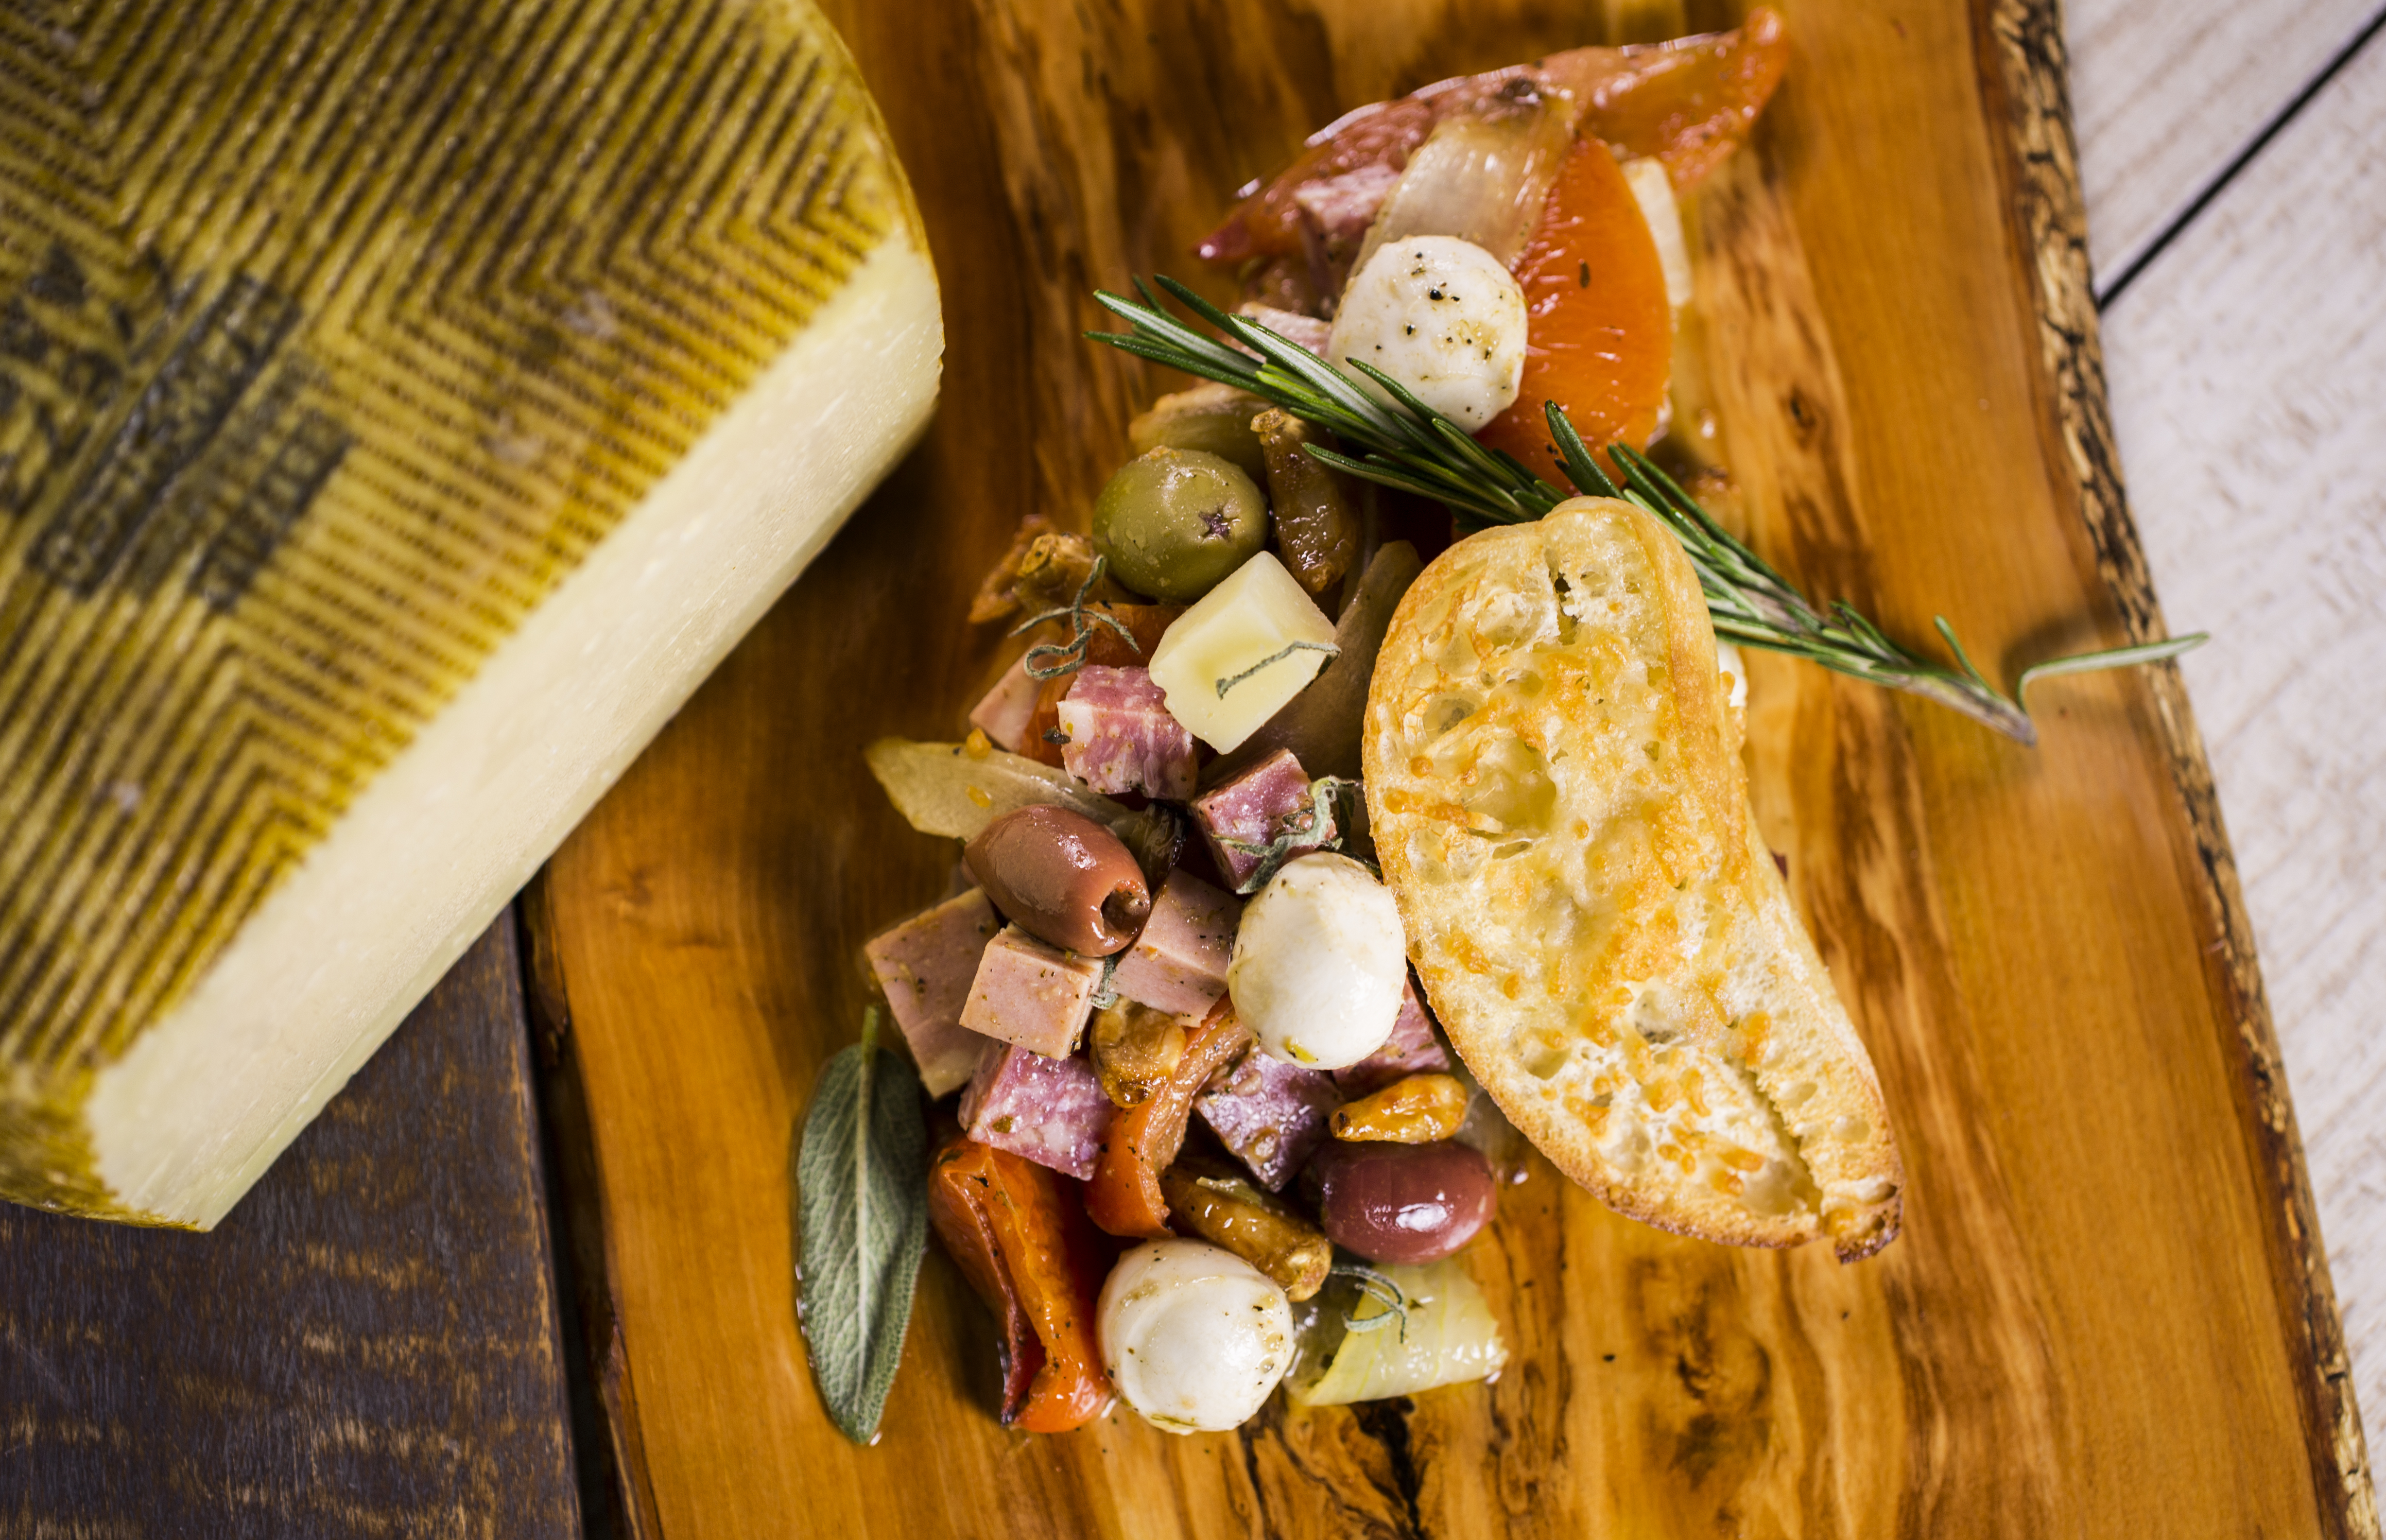 Anitpasti of roasted tomatoes, artesian meats, cheese, olives